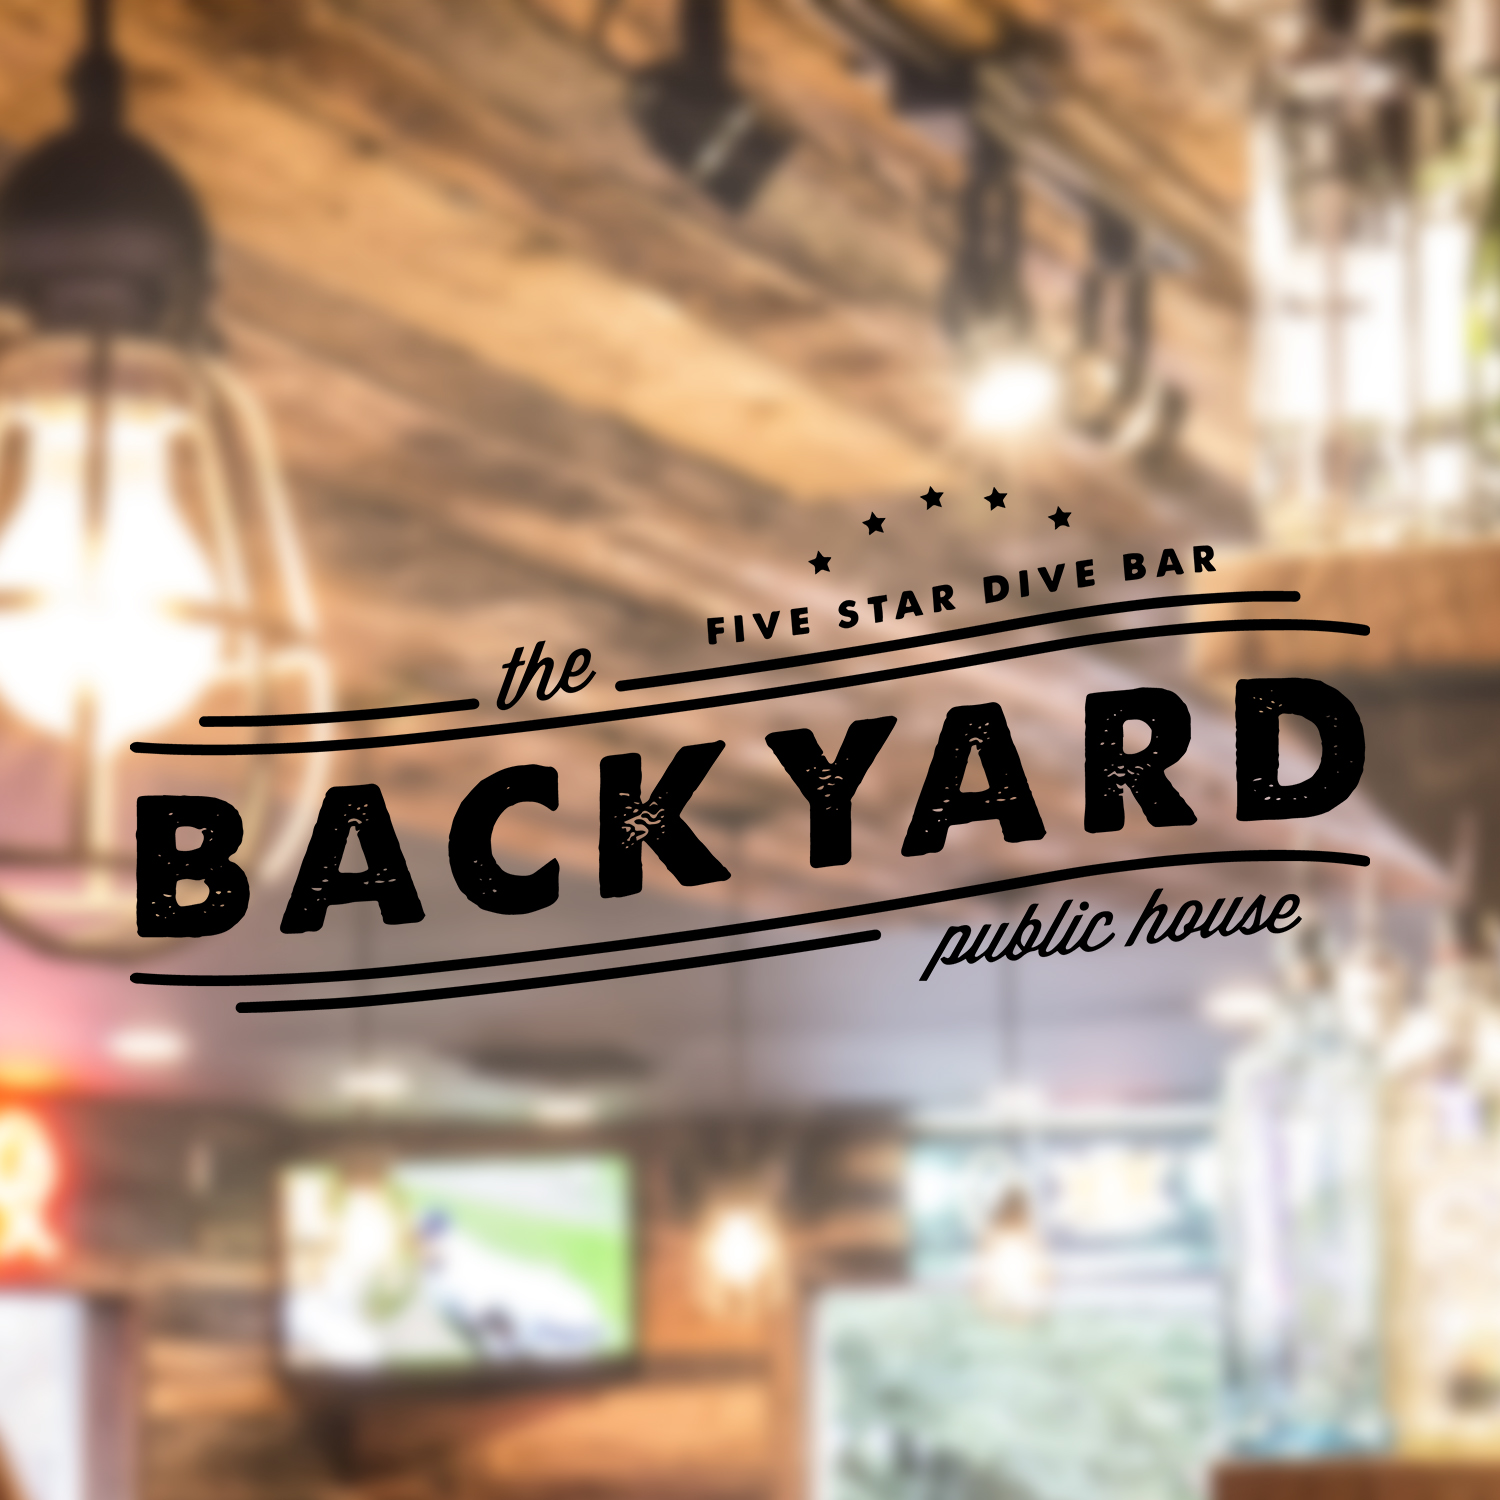 Backyard Public House Spokane